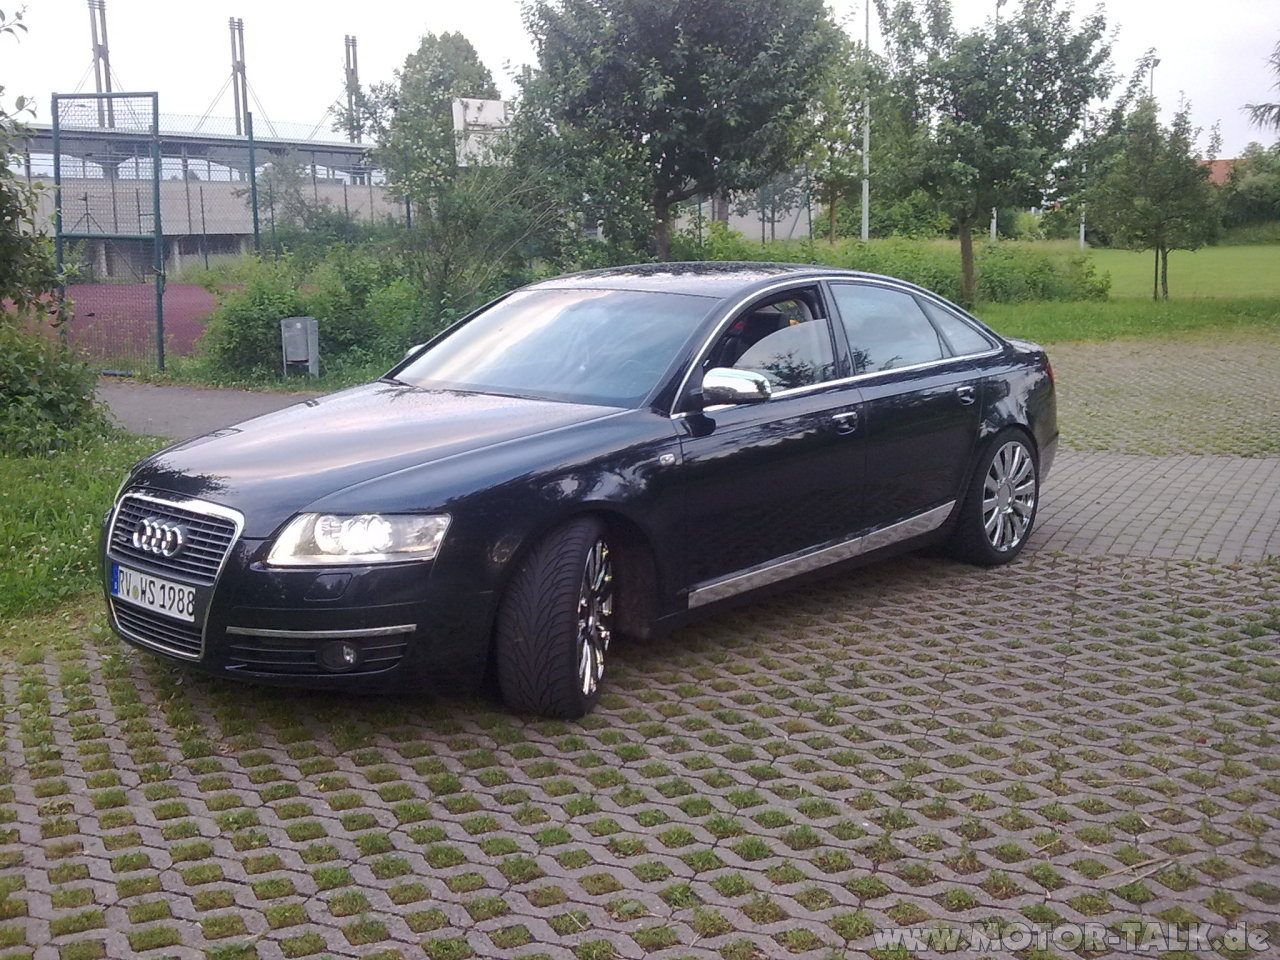 2004 audi a6 4f c6 pictures information and specs auto. Black Bedroom Furniture Sets. Home Design Ideas